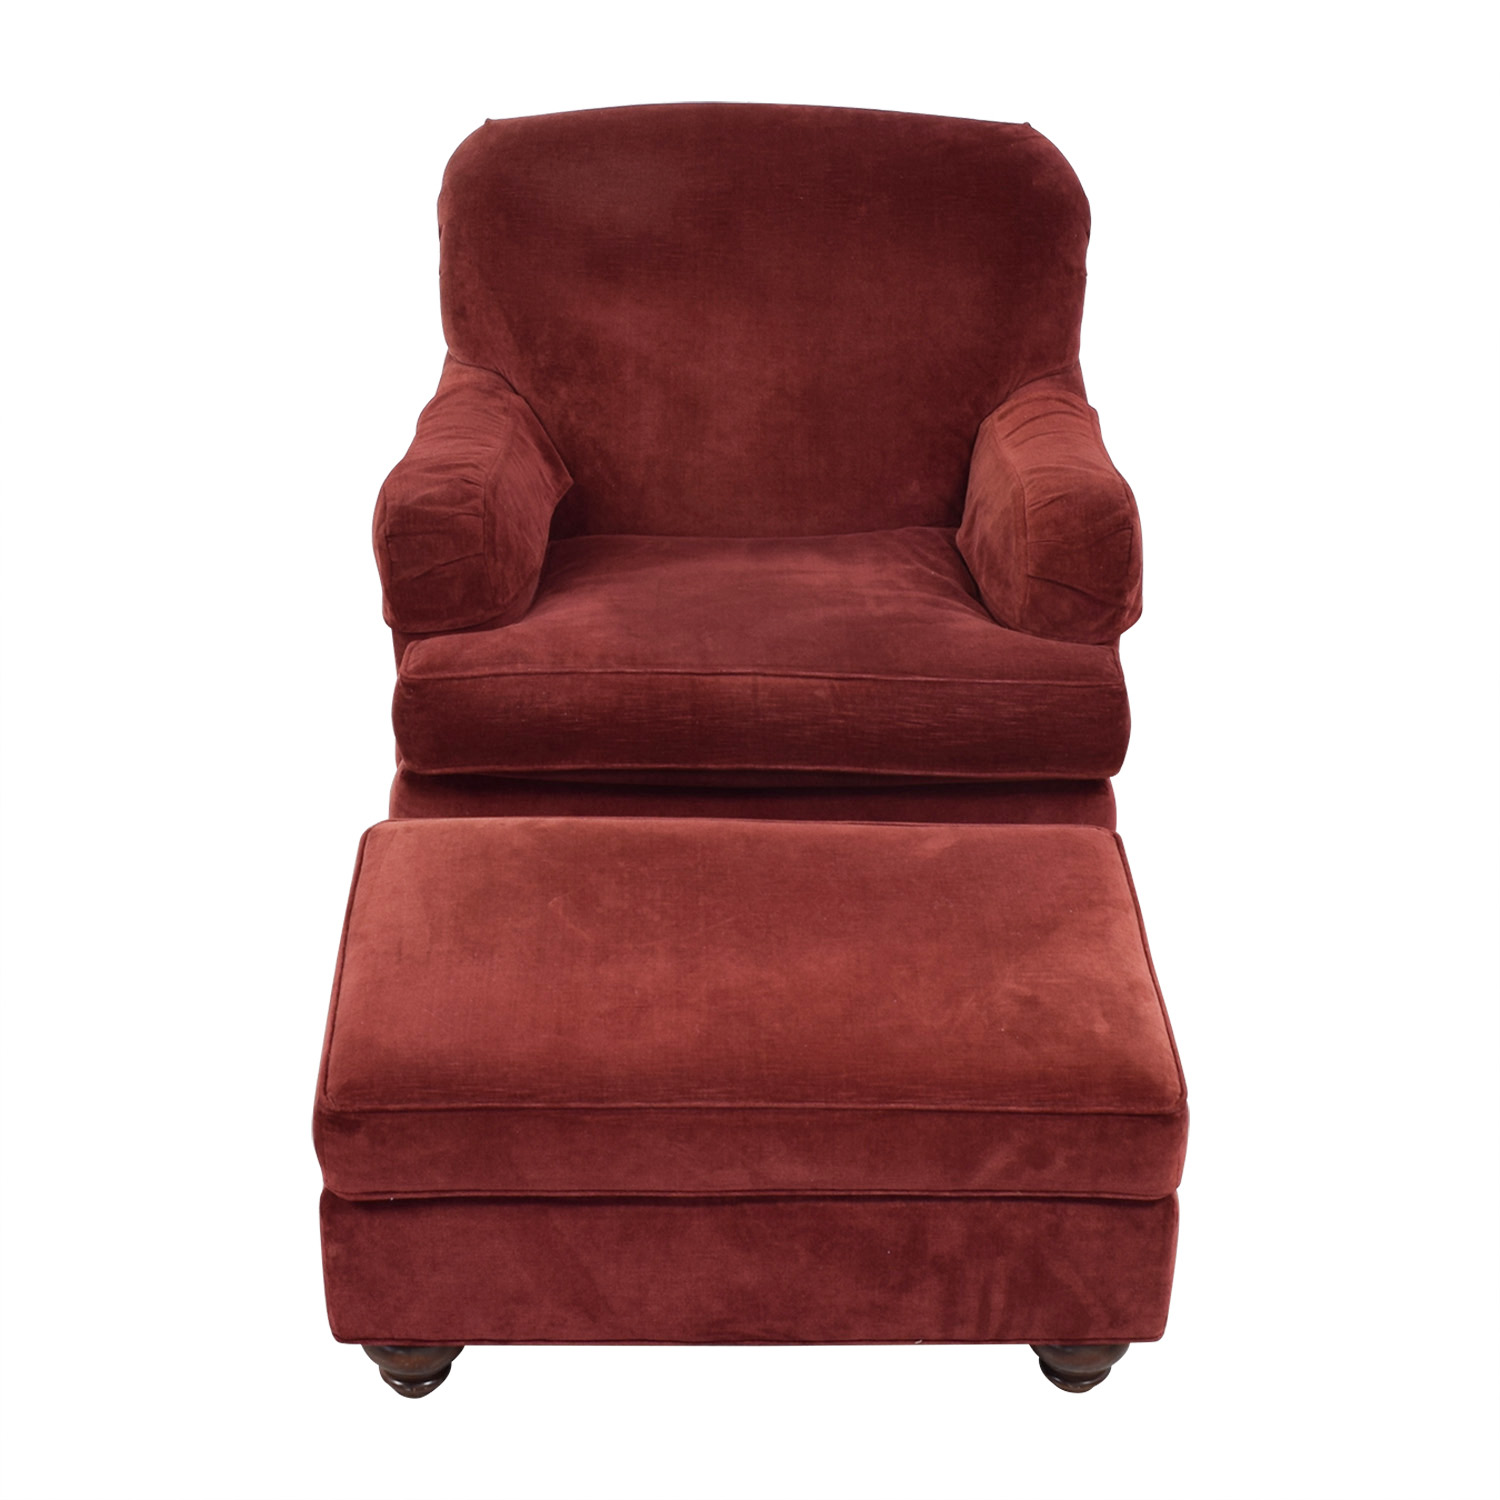 Ethan Allen Ethan Allen Cherry Accent Chair and Ottoman discount